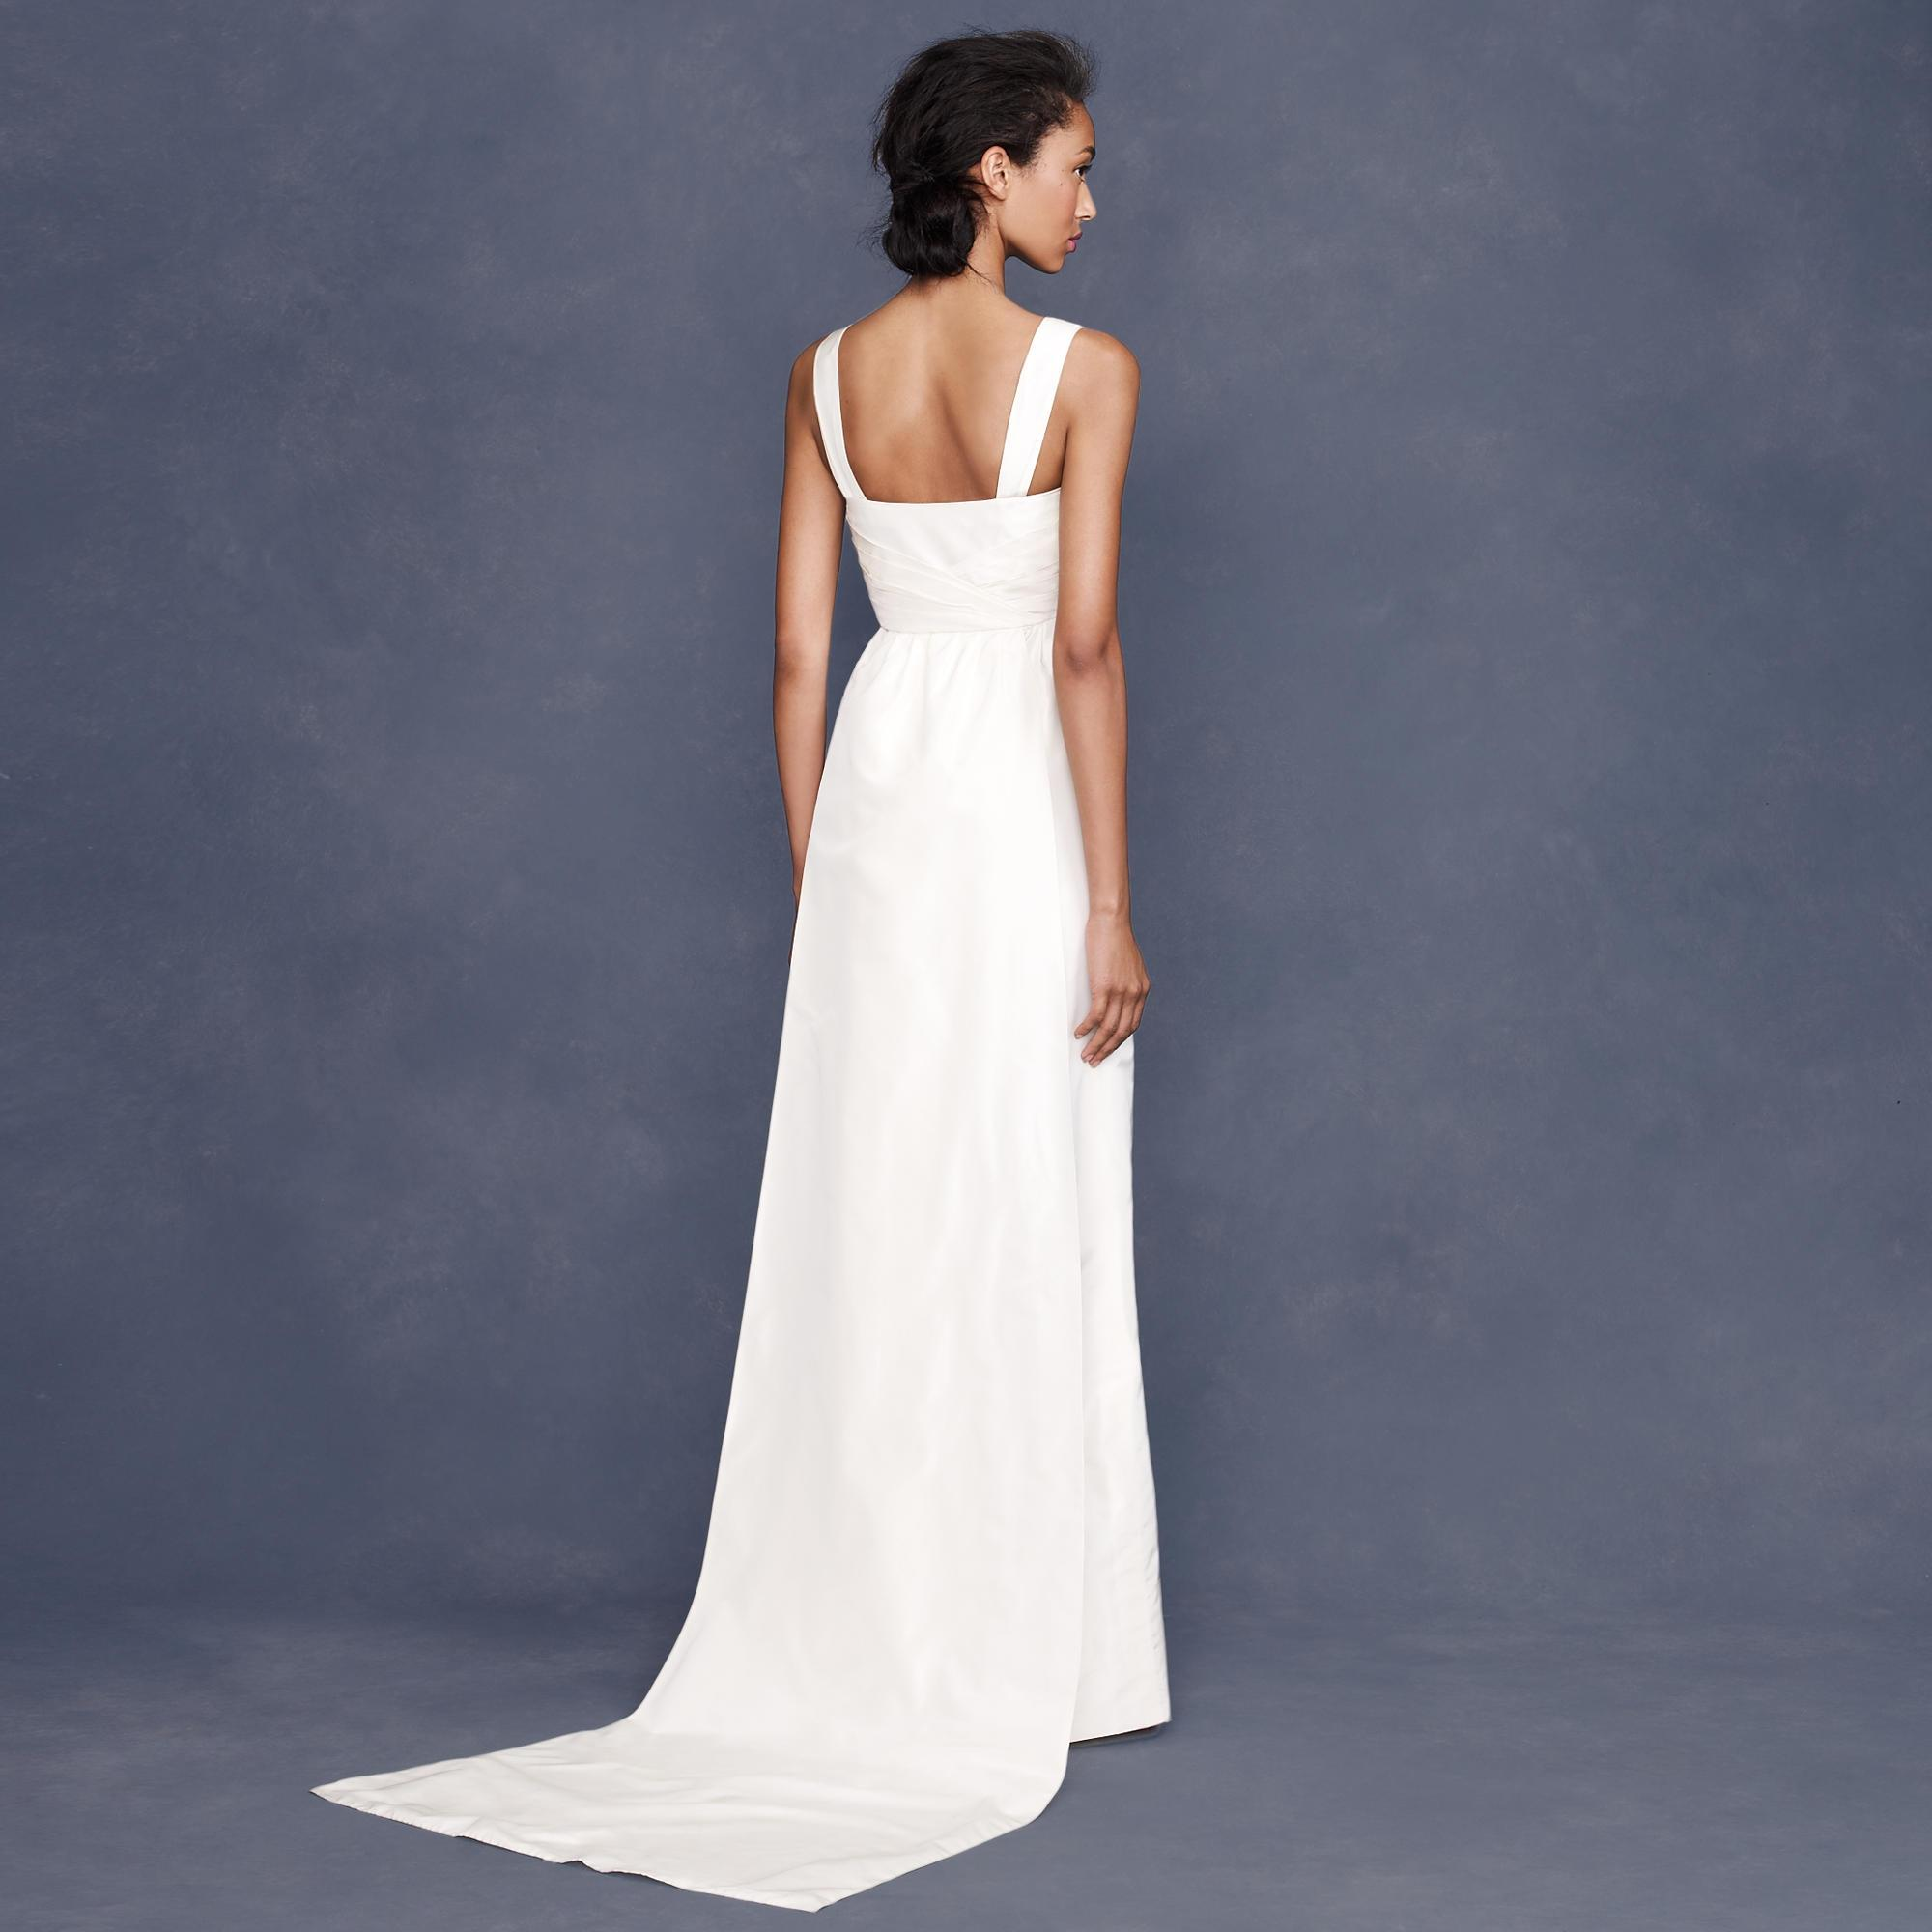 J Crew Arabelle Wedding Dress | Dream Wedding IdeaS Around The World